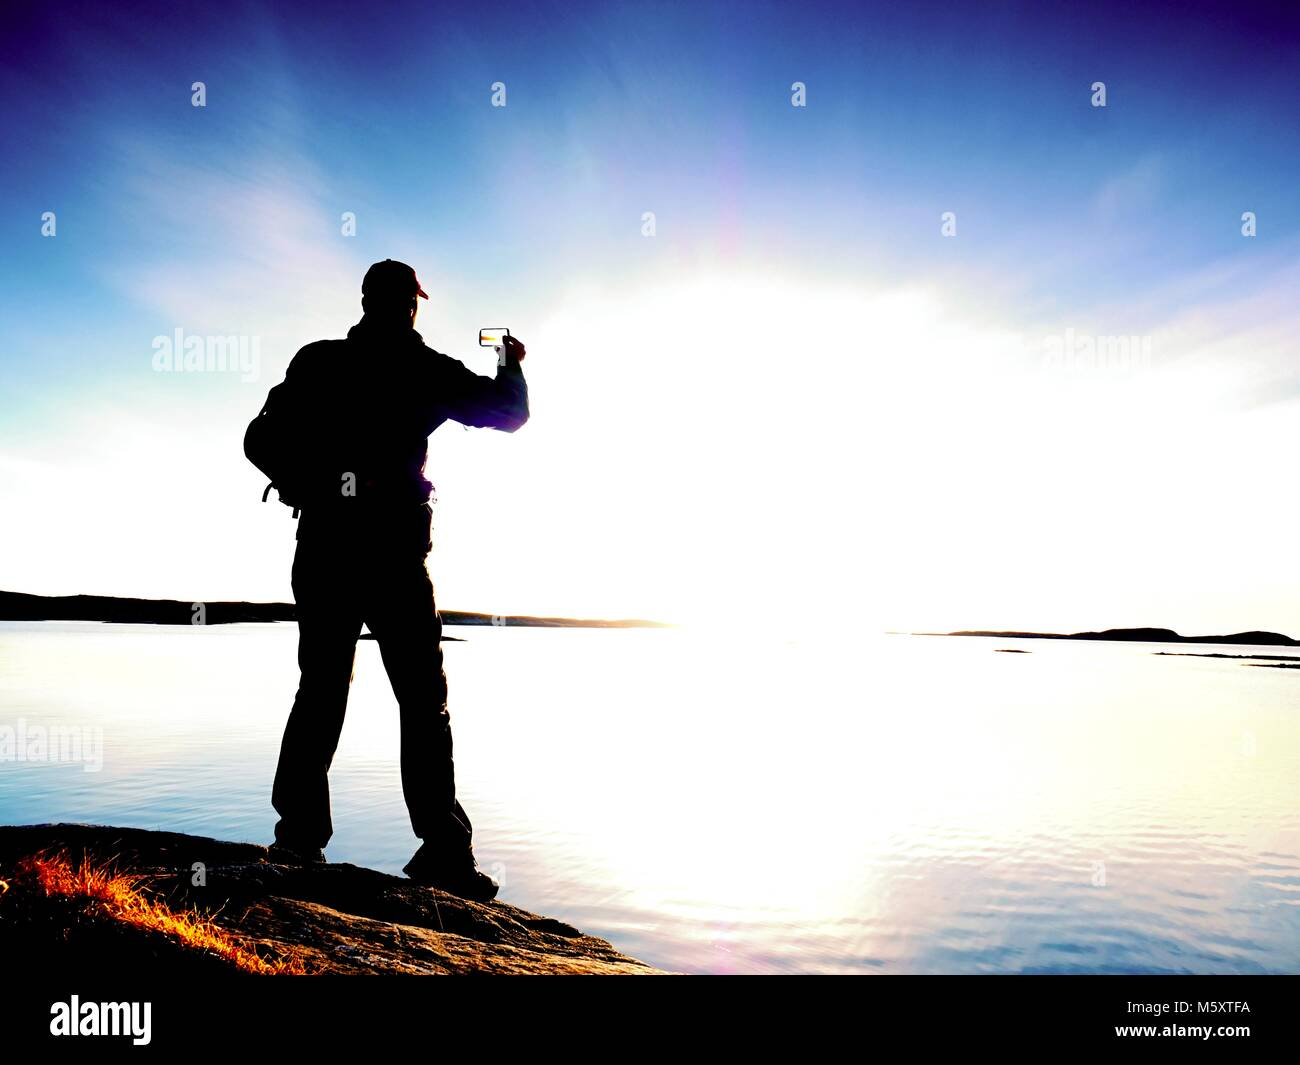 Silhouette of man keep memories with camera phone in his hand. Marvelous sunset at sea, smooth water level - Stock Image